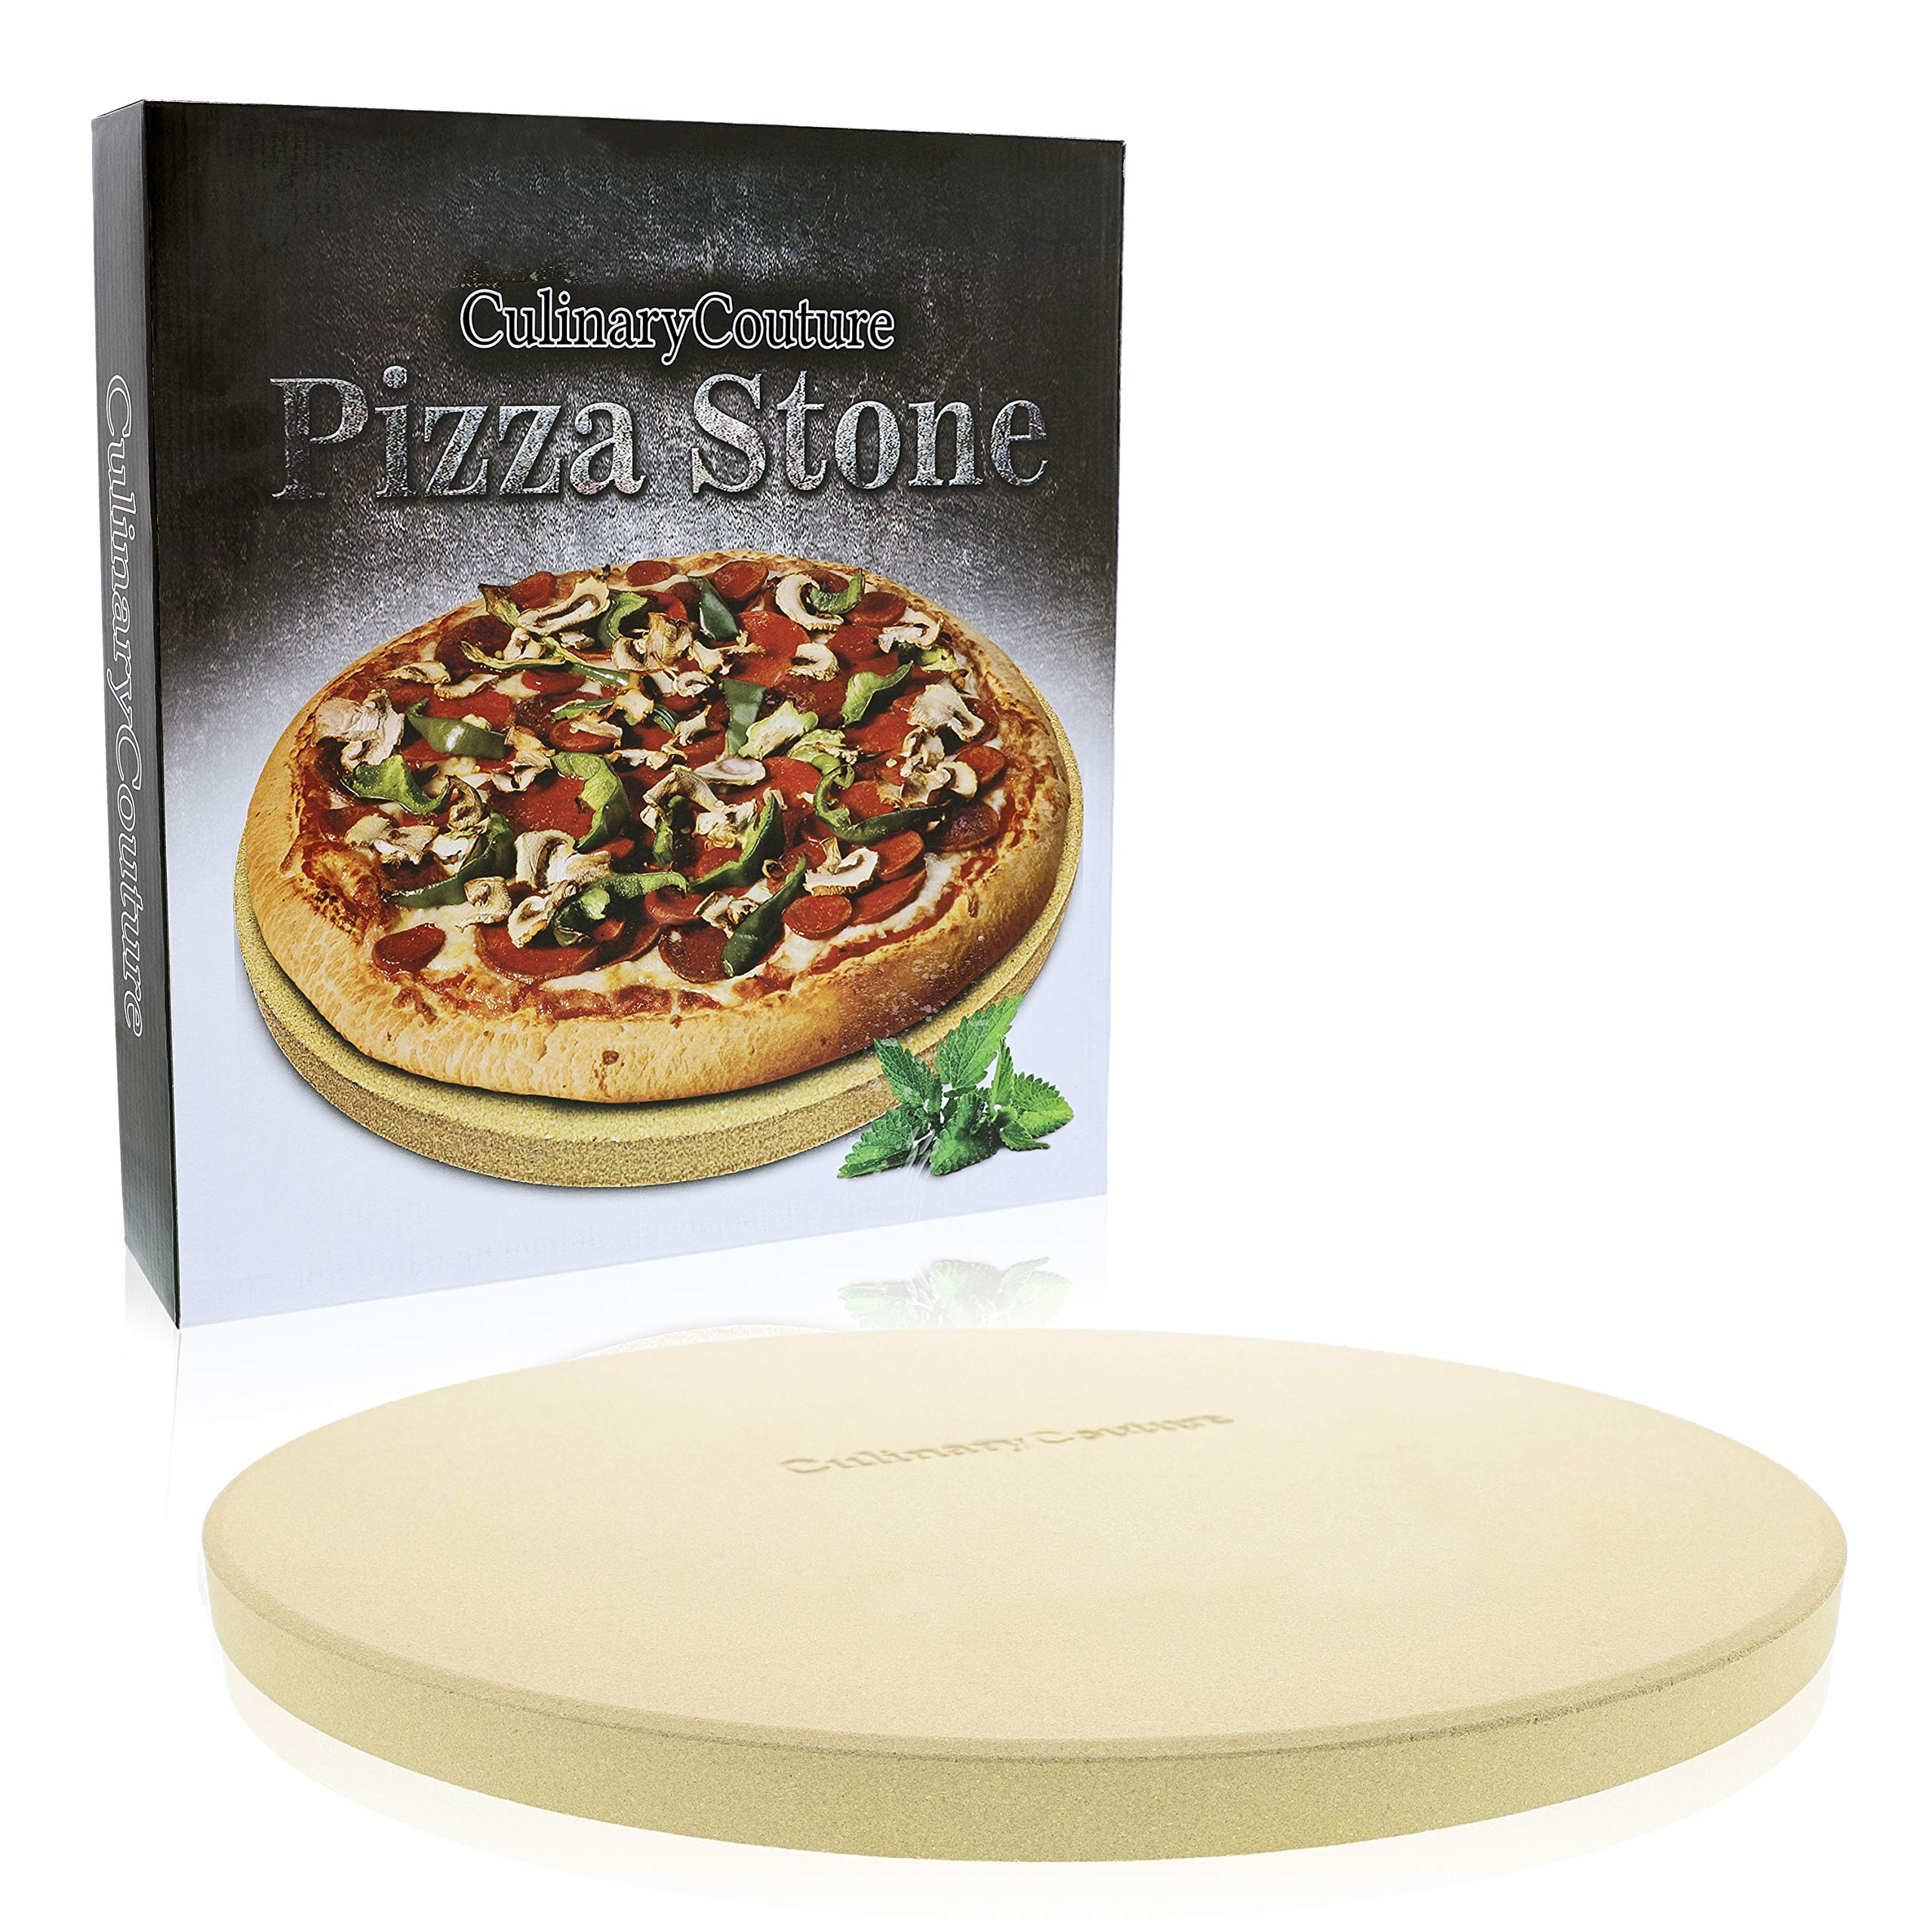 Pizza Stone for Grill and Oven - 15 Inch 3/4'' Extra Thick - Cooking & Baking Stone for Oven and BBQ Grill - With Durable Foam Packaging, Gift Box & Pizza Recipes EBook